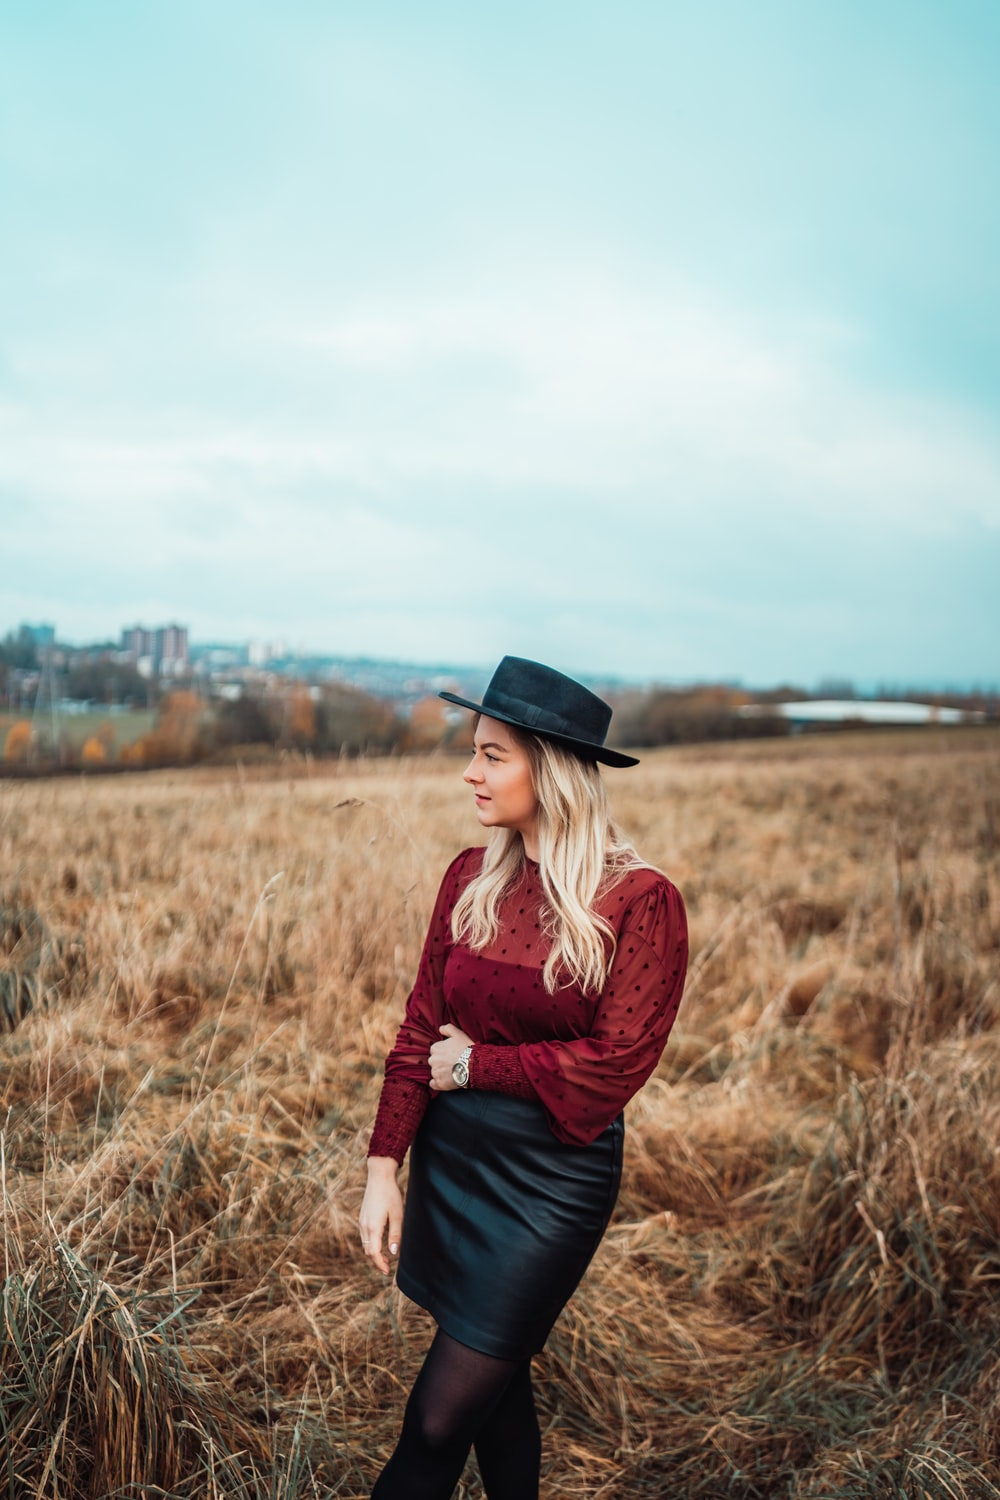 shallow focus photo of woman in maroon long-sleeved shirt